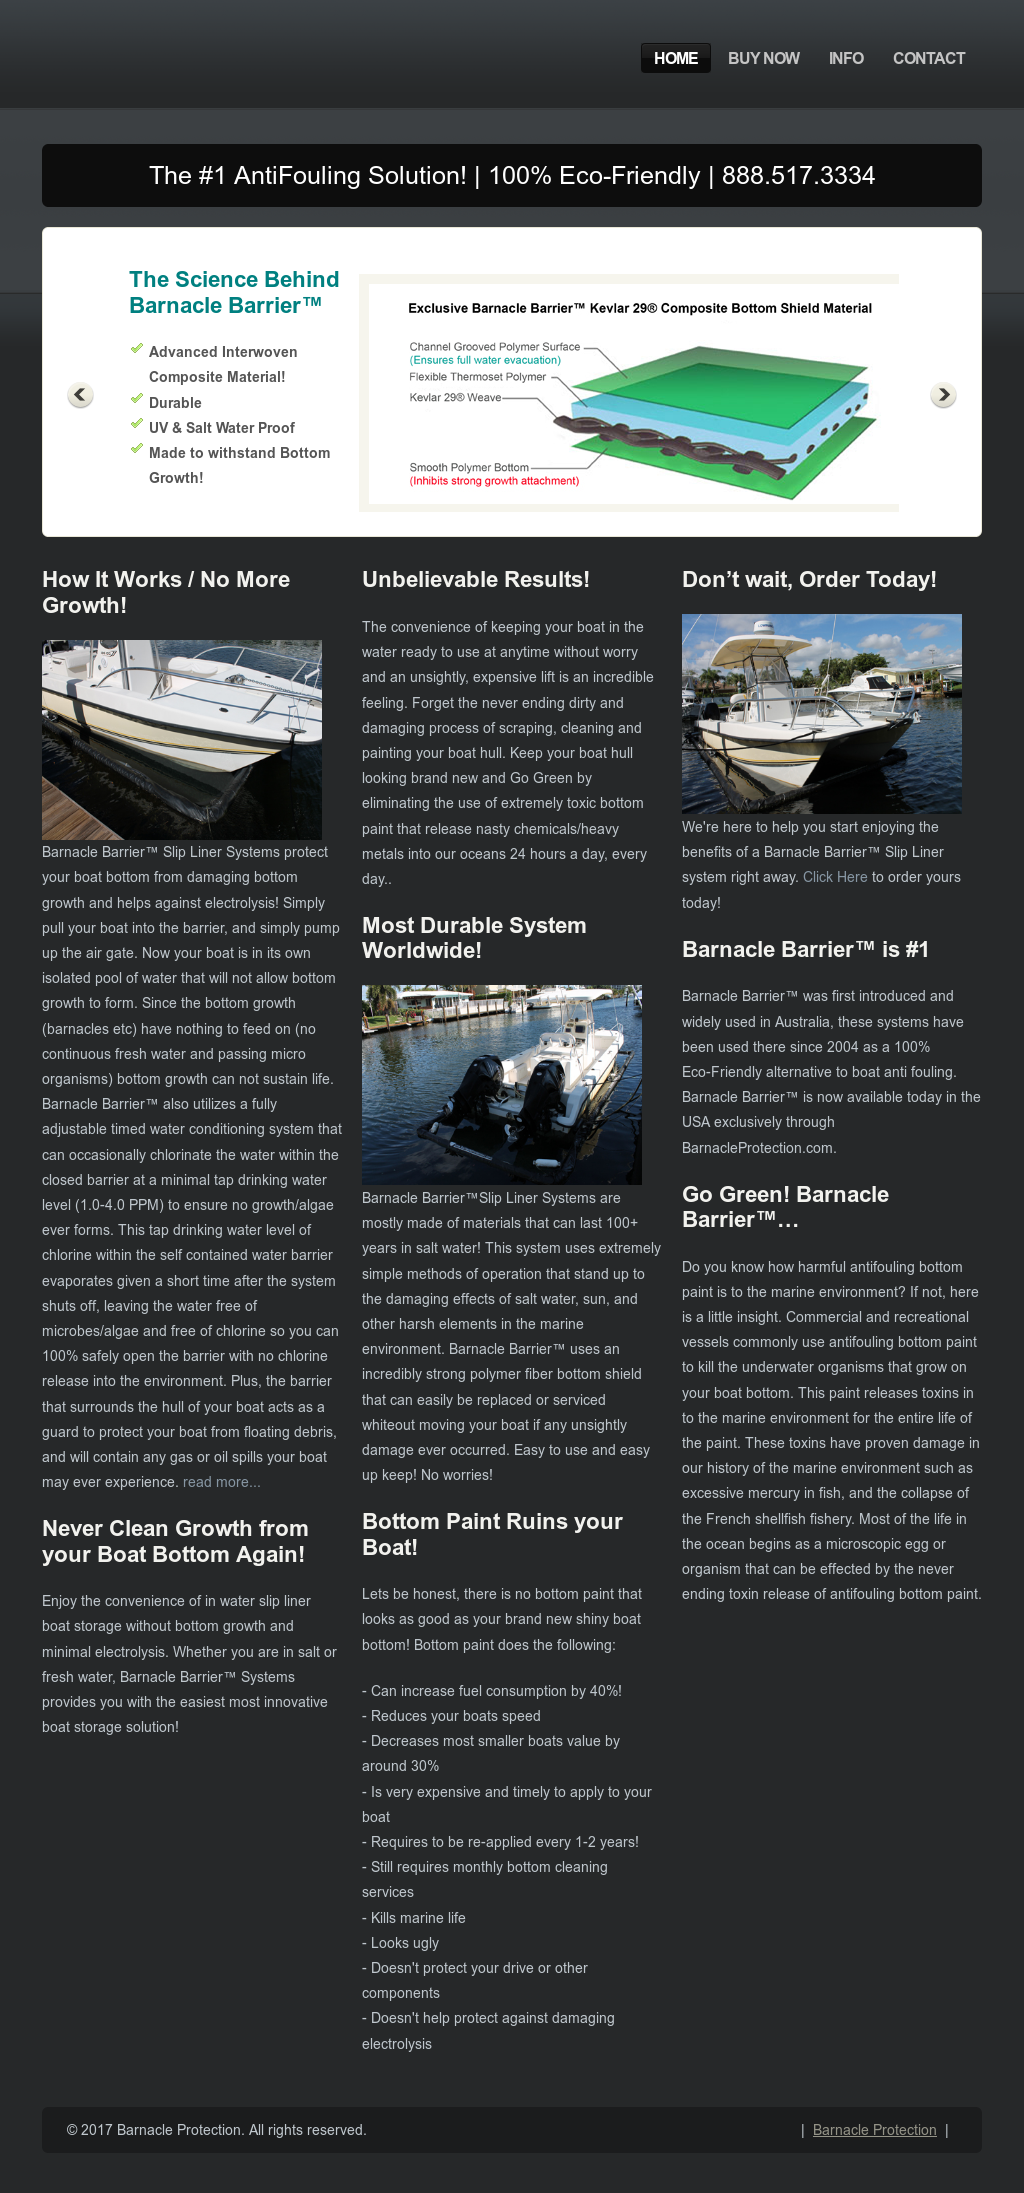 Barnacle Protection Competitors, Revenue and Employees - Owler